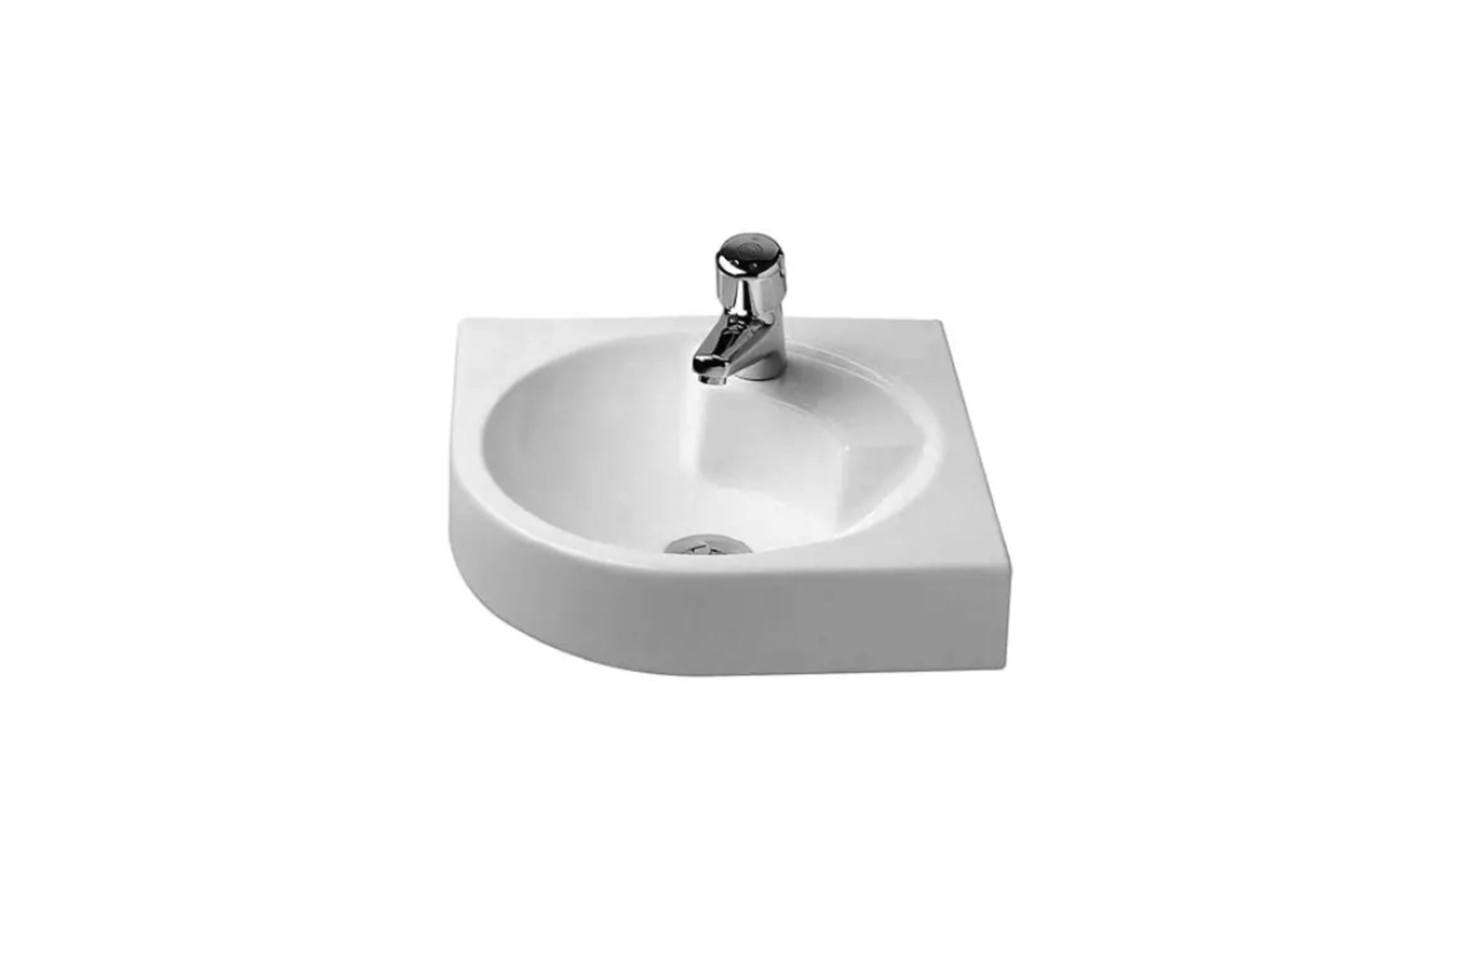 The Architec Wall-Mount Wash Basin Corner Model is $3.60 at Quality Bath.